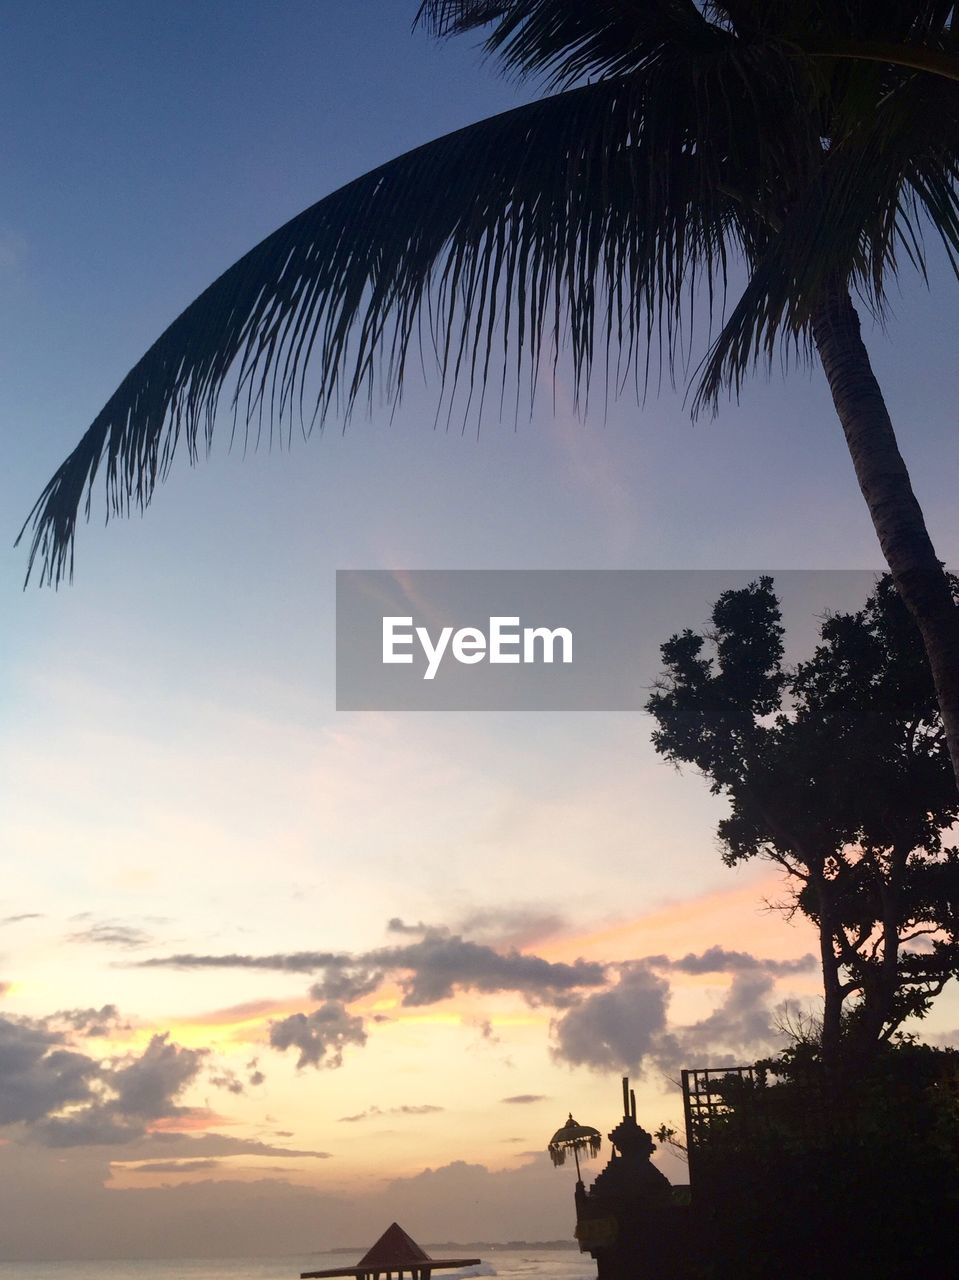 sunset, tree, palm tree, sky, beauty in nature, nature, silhouette, scenics, no people, outdoors, low angle view, tranquility, tranquil scene, cloud - sky, growth, day